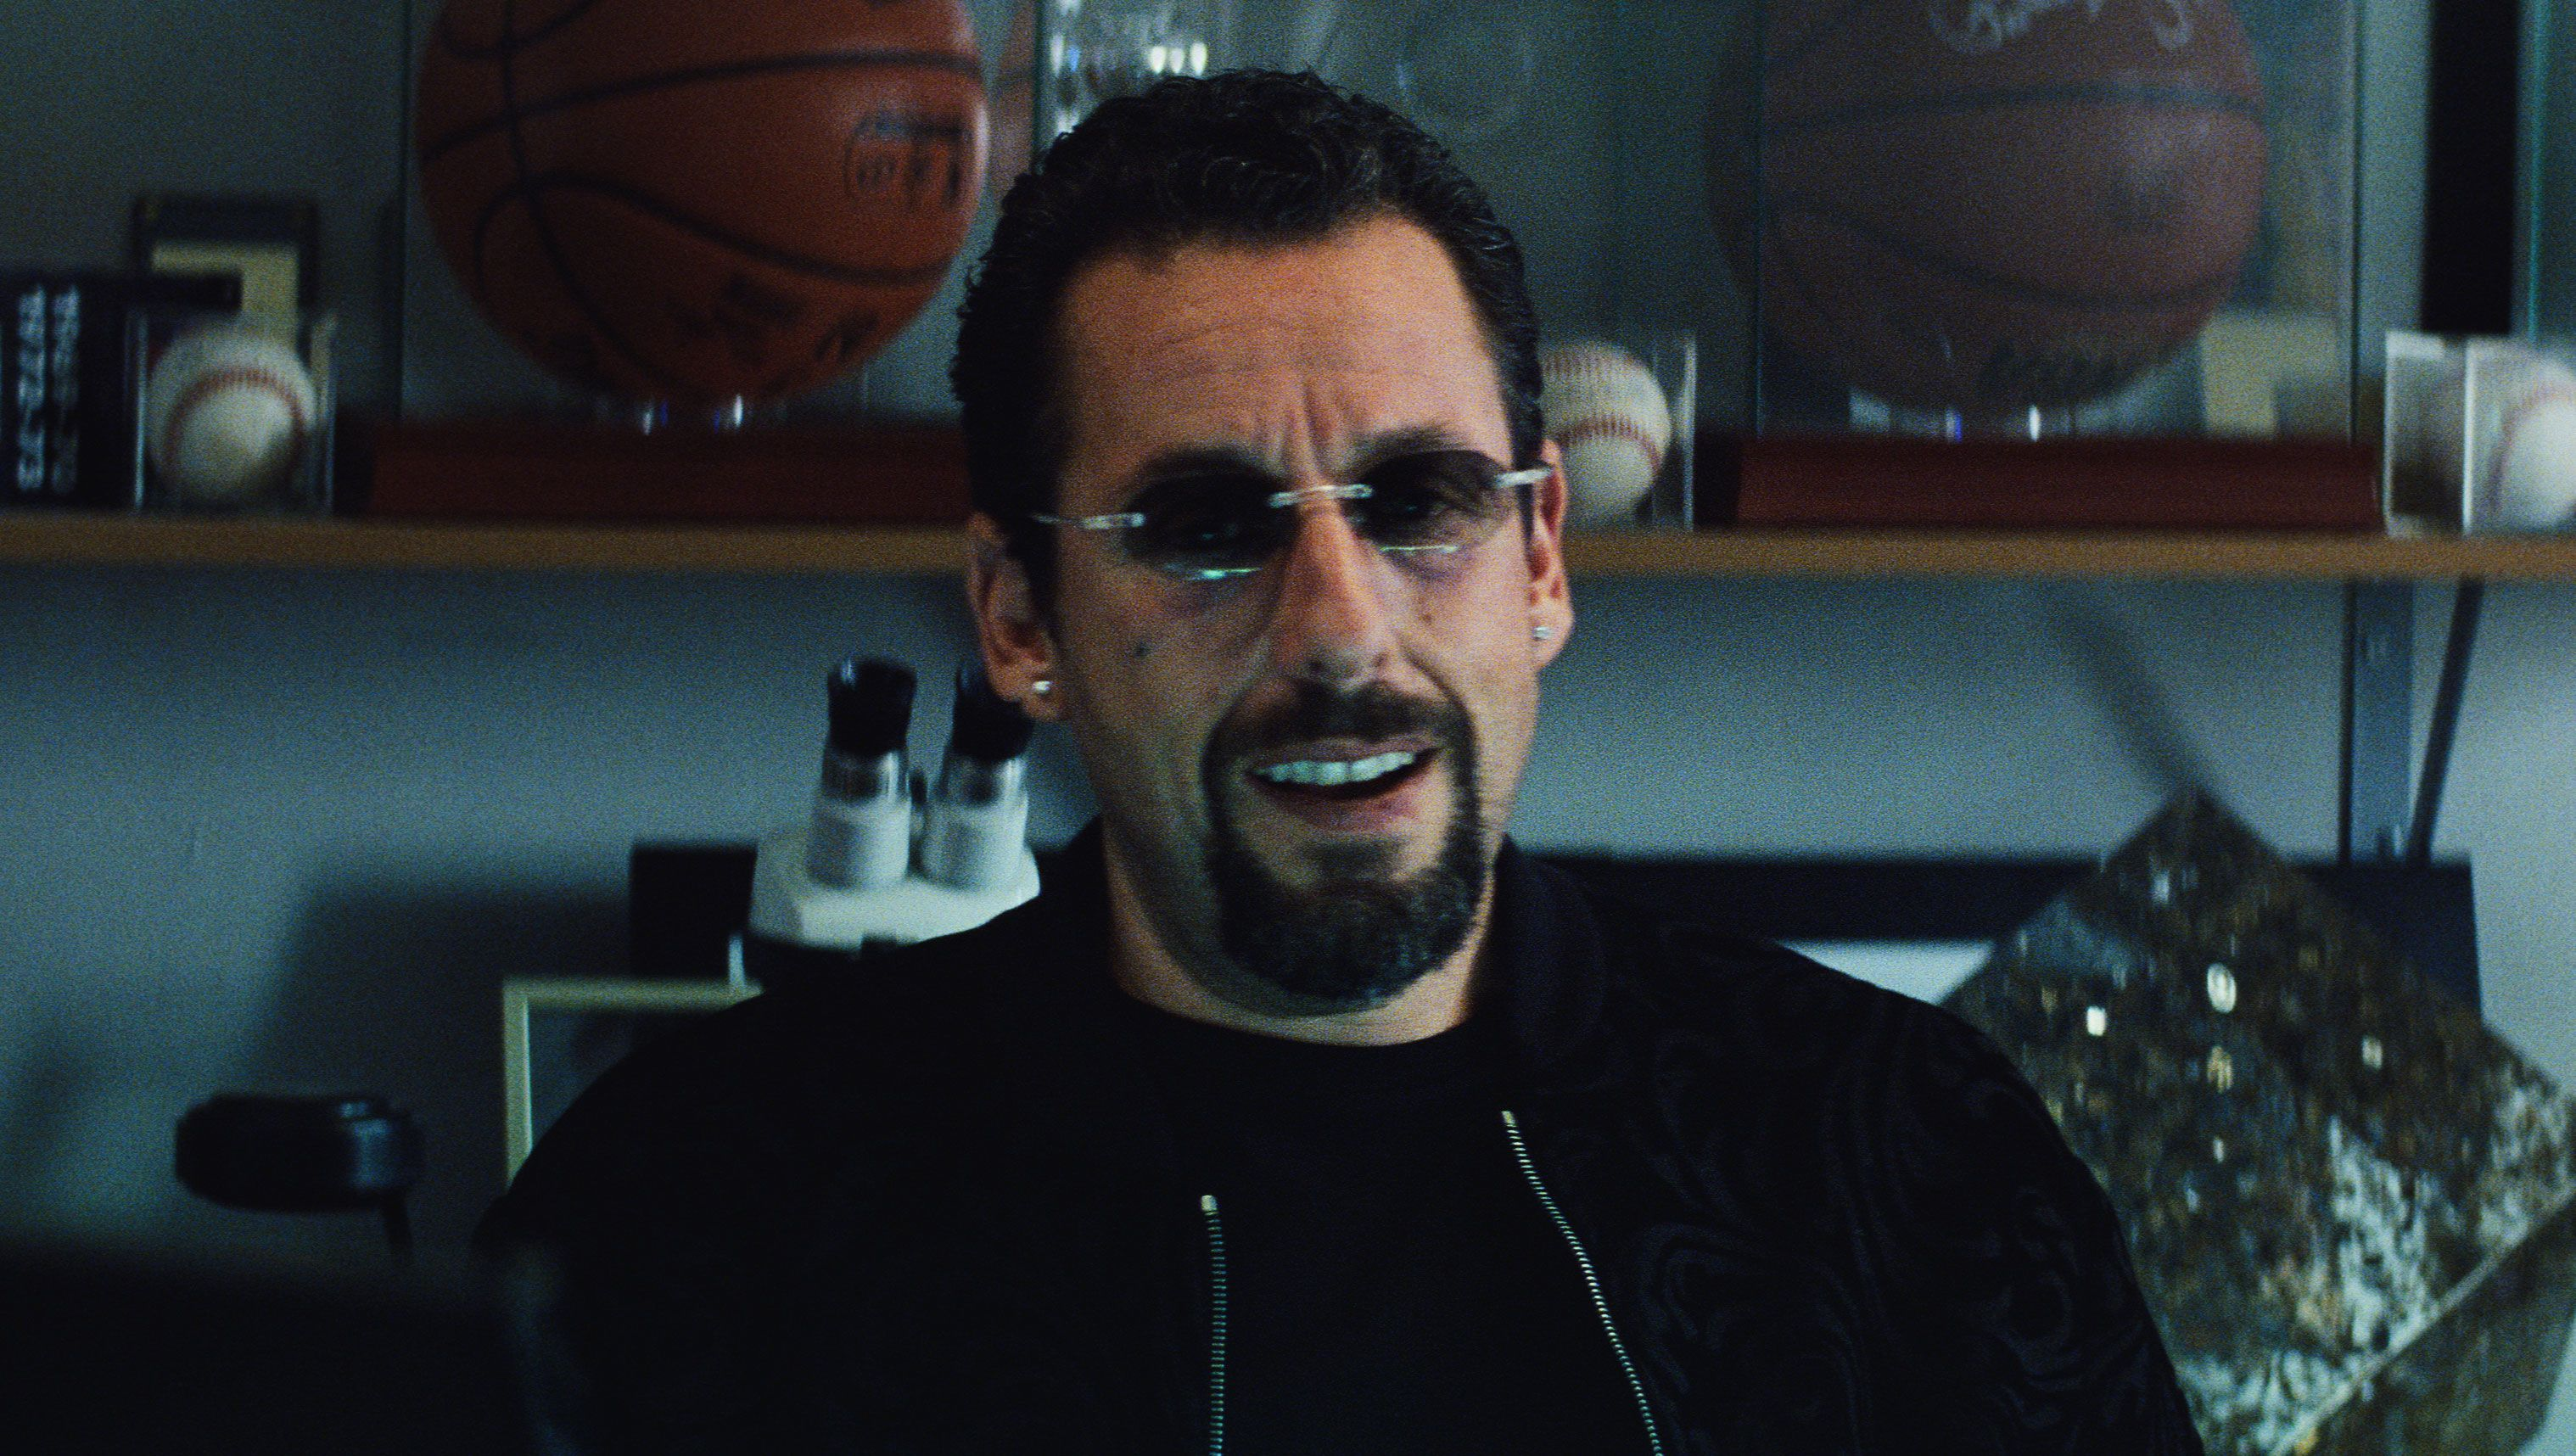 I Want to Wear Tinted Glasses in the Club Like Adam Sandler in Uncut Gems